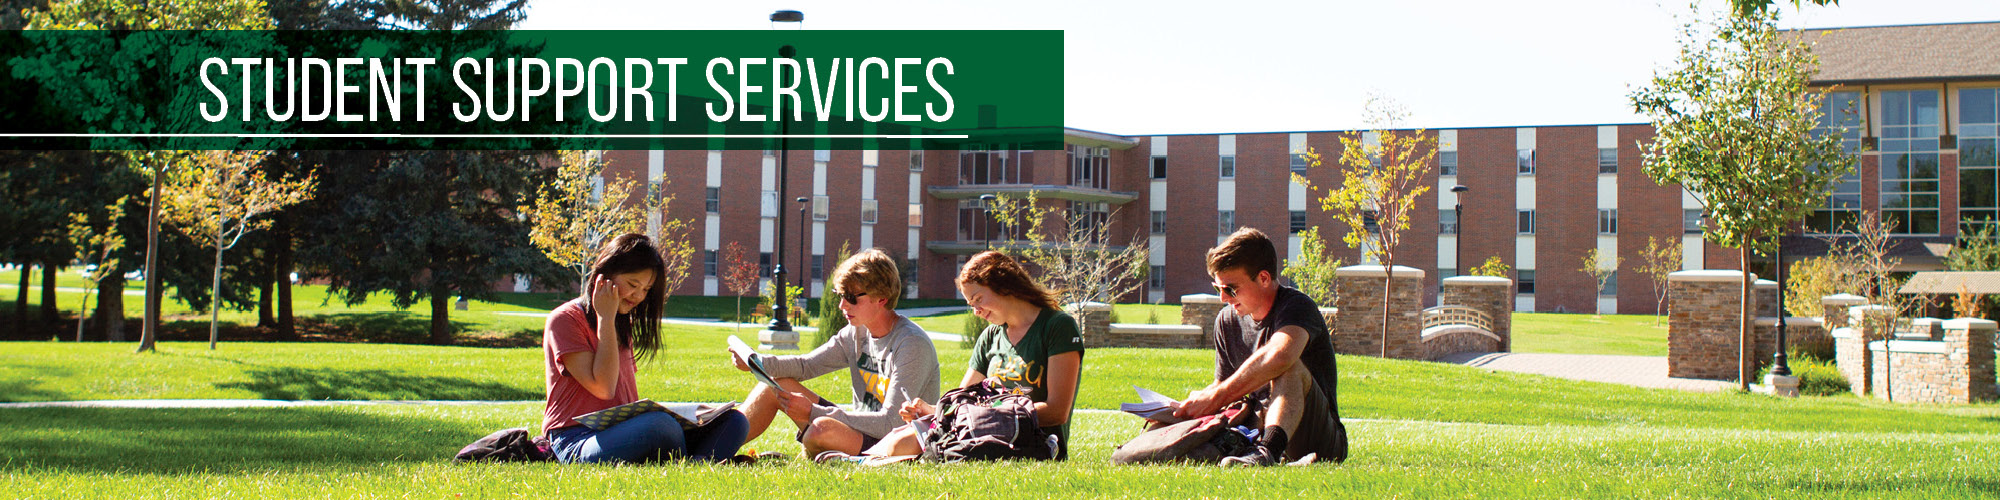 Student Support Services.